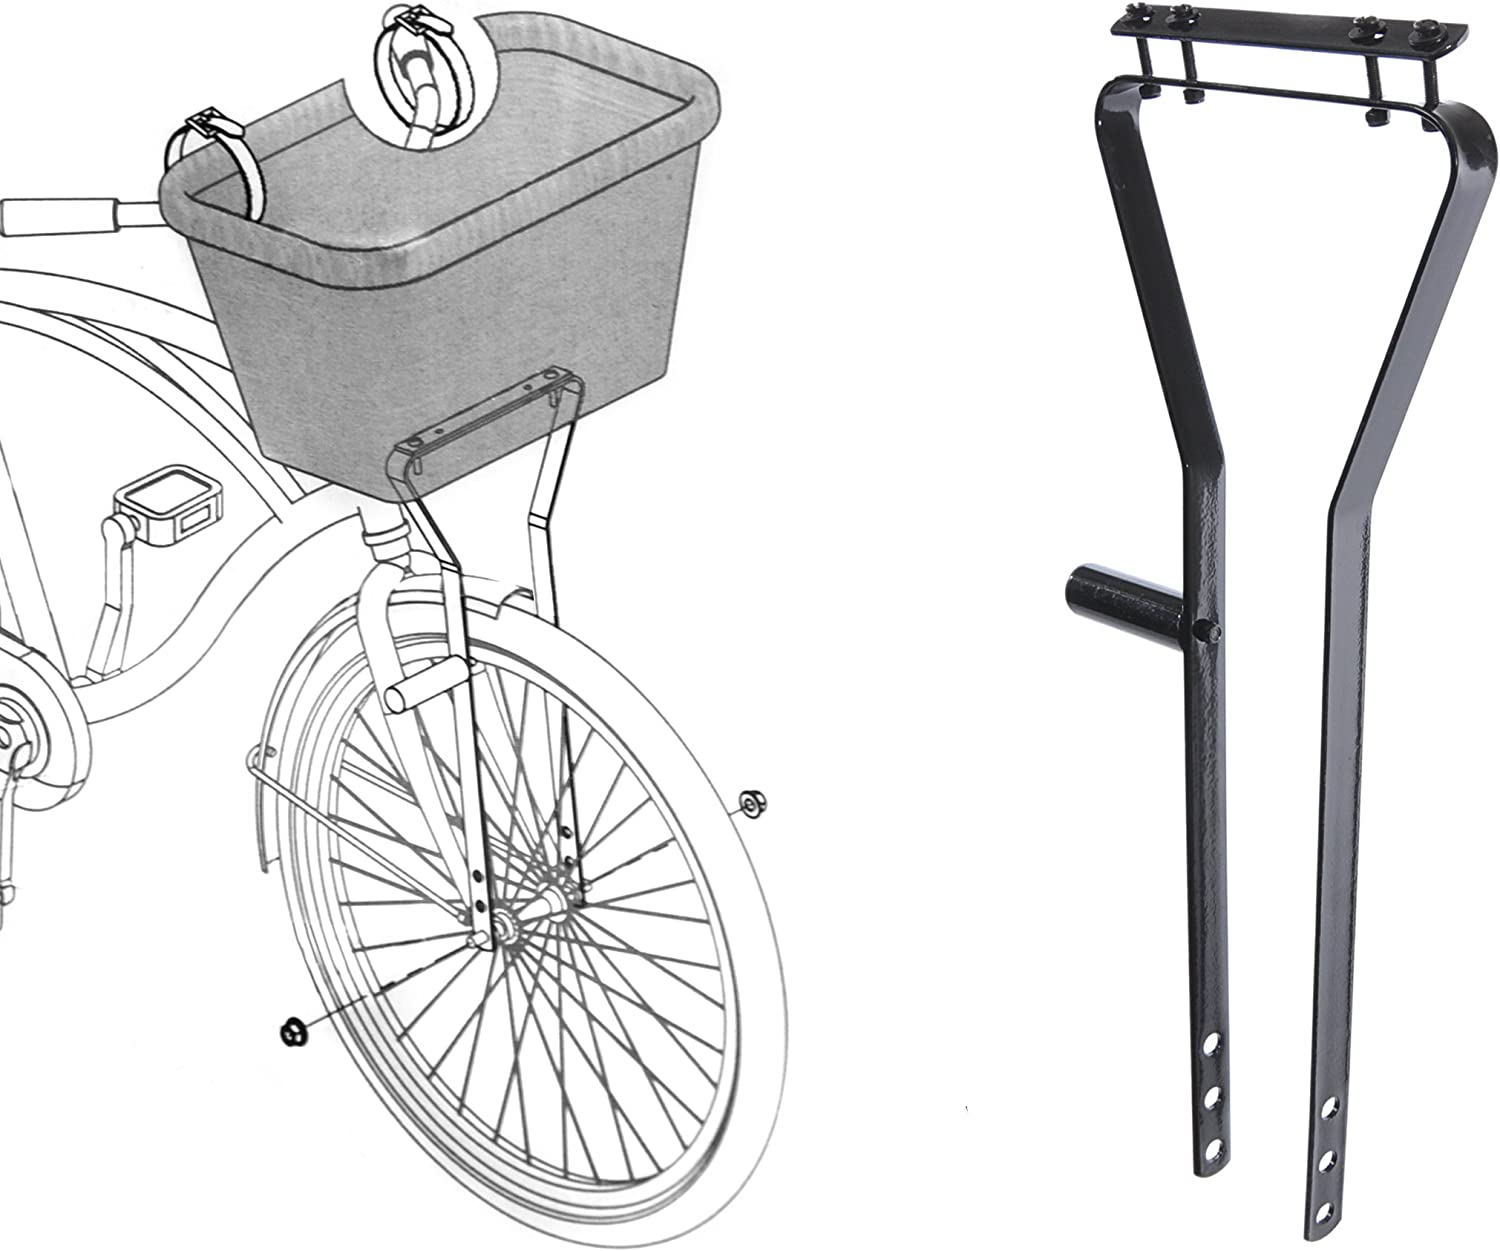 AMMACO CYCLE BIKE BICYCLE BASKET METAL FRAME SUPPORT FOR WIRE OR WICKER BASKETS by Ammaco